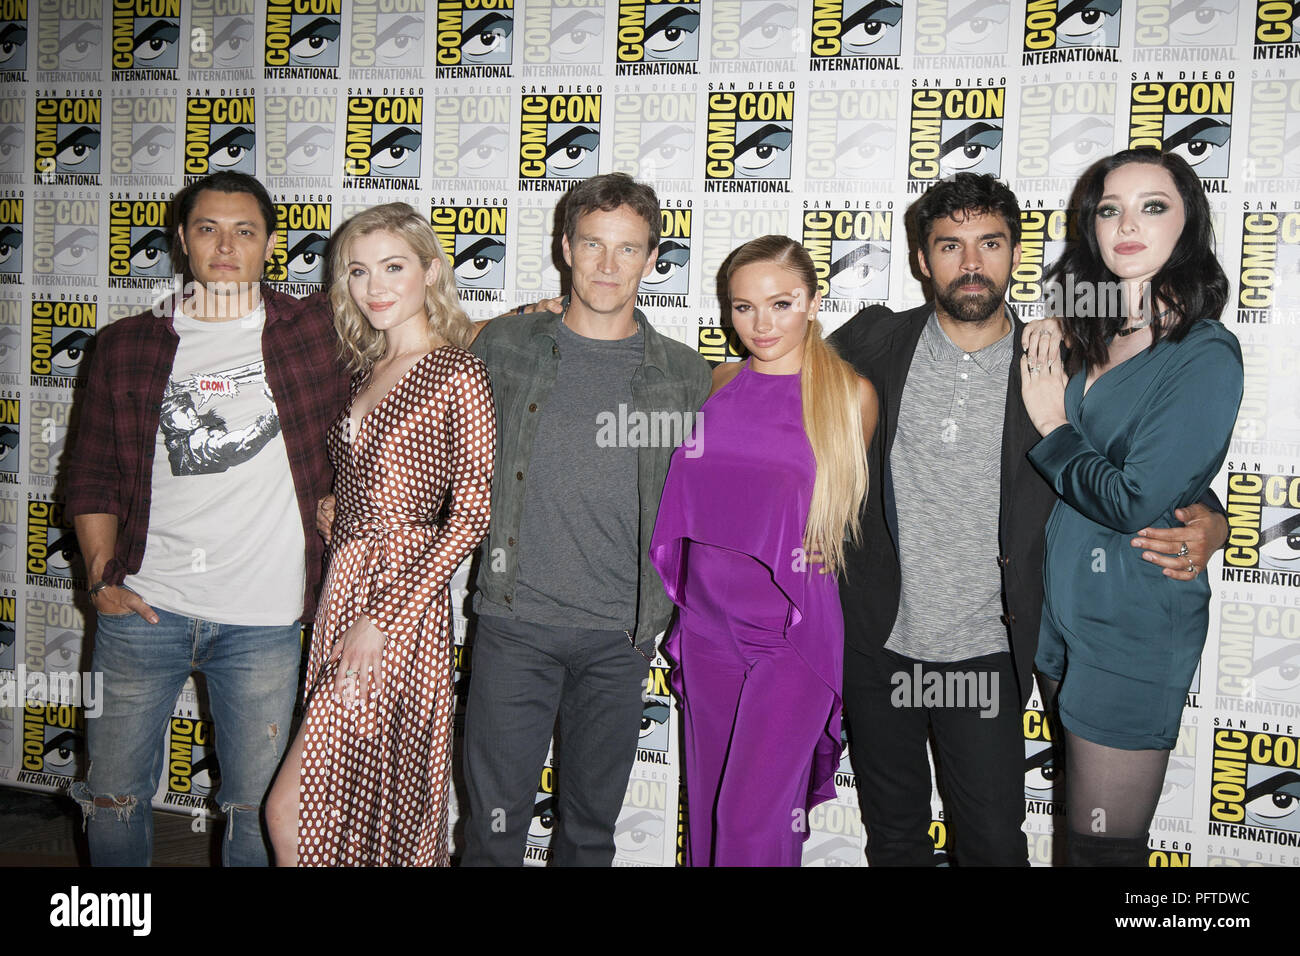 2018 San Diego Comic Con - The Gifted - Photocall  Featuring: Blair Redford, Skyler Samuels, Stephen Moyer, Natalie Alyn Lind, Sean Teale, Emma Dumont Where: San Diego, California, United States When: 21 Jul 2018 Credit: Tony Forte/WENN - Stock Image